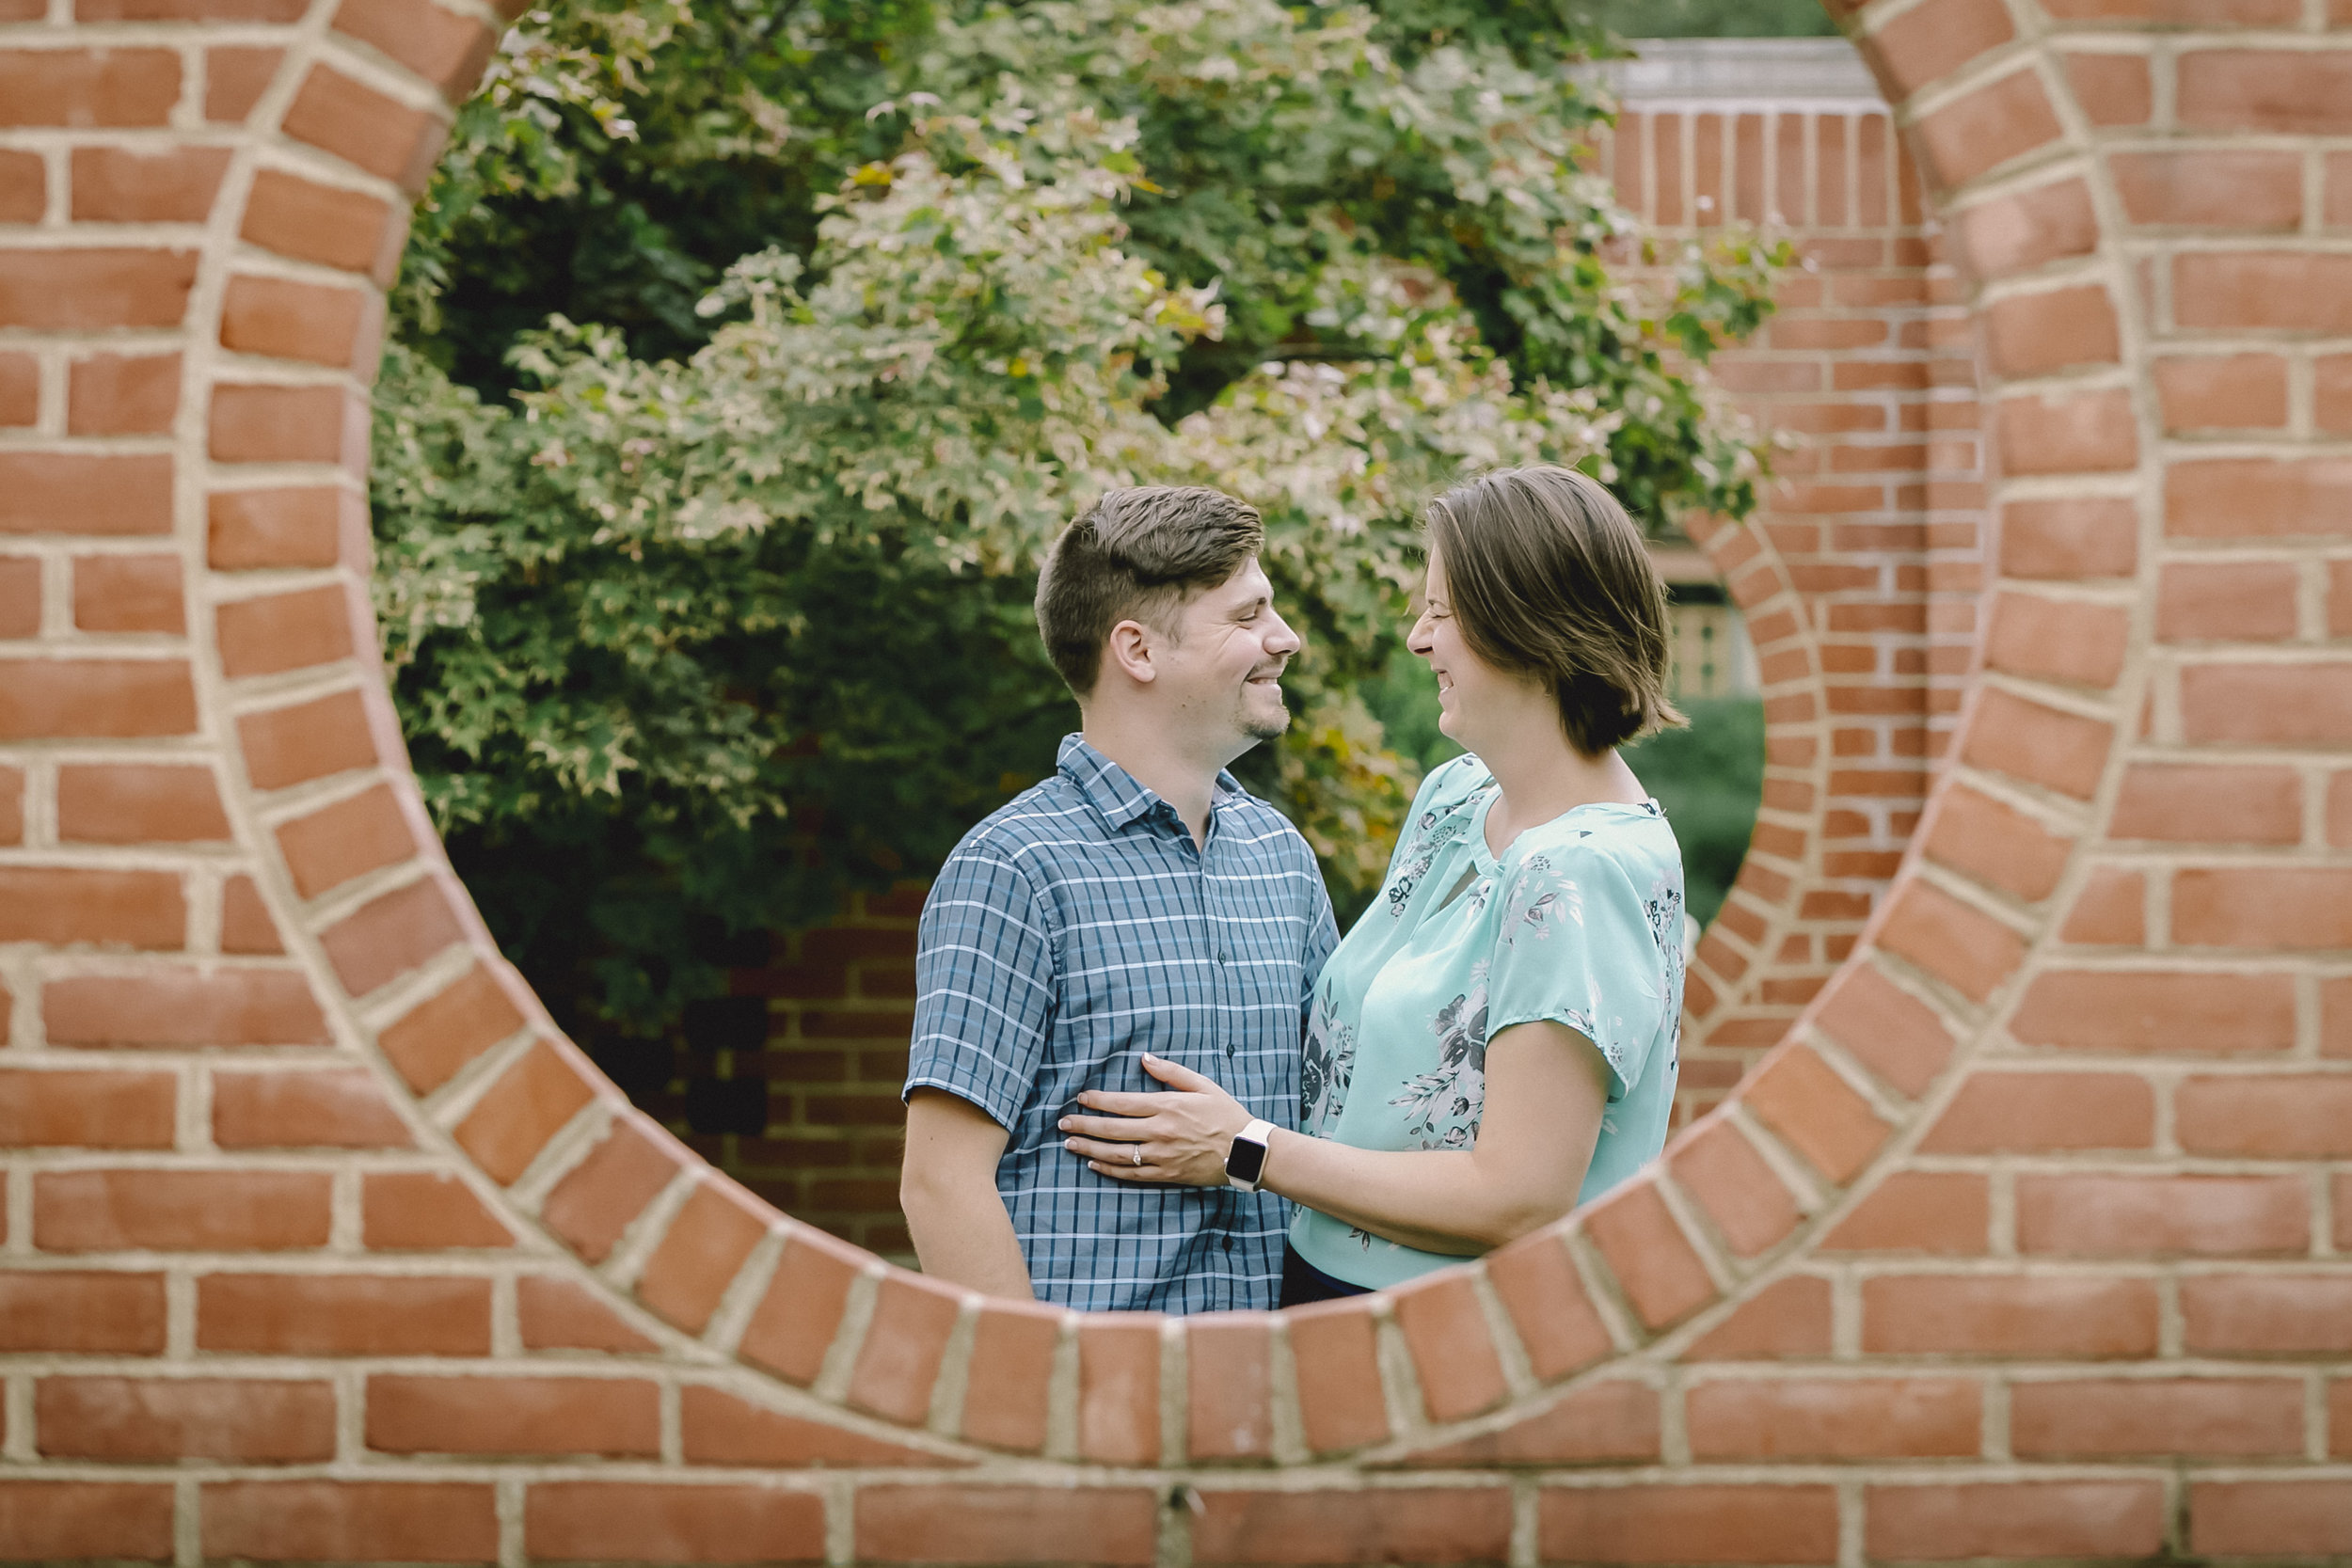 Rebecca_K_Clark_Photography_Engagement_Gallery_Web-44.JPG